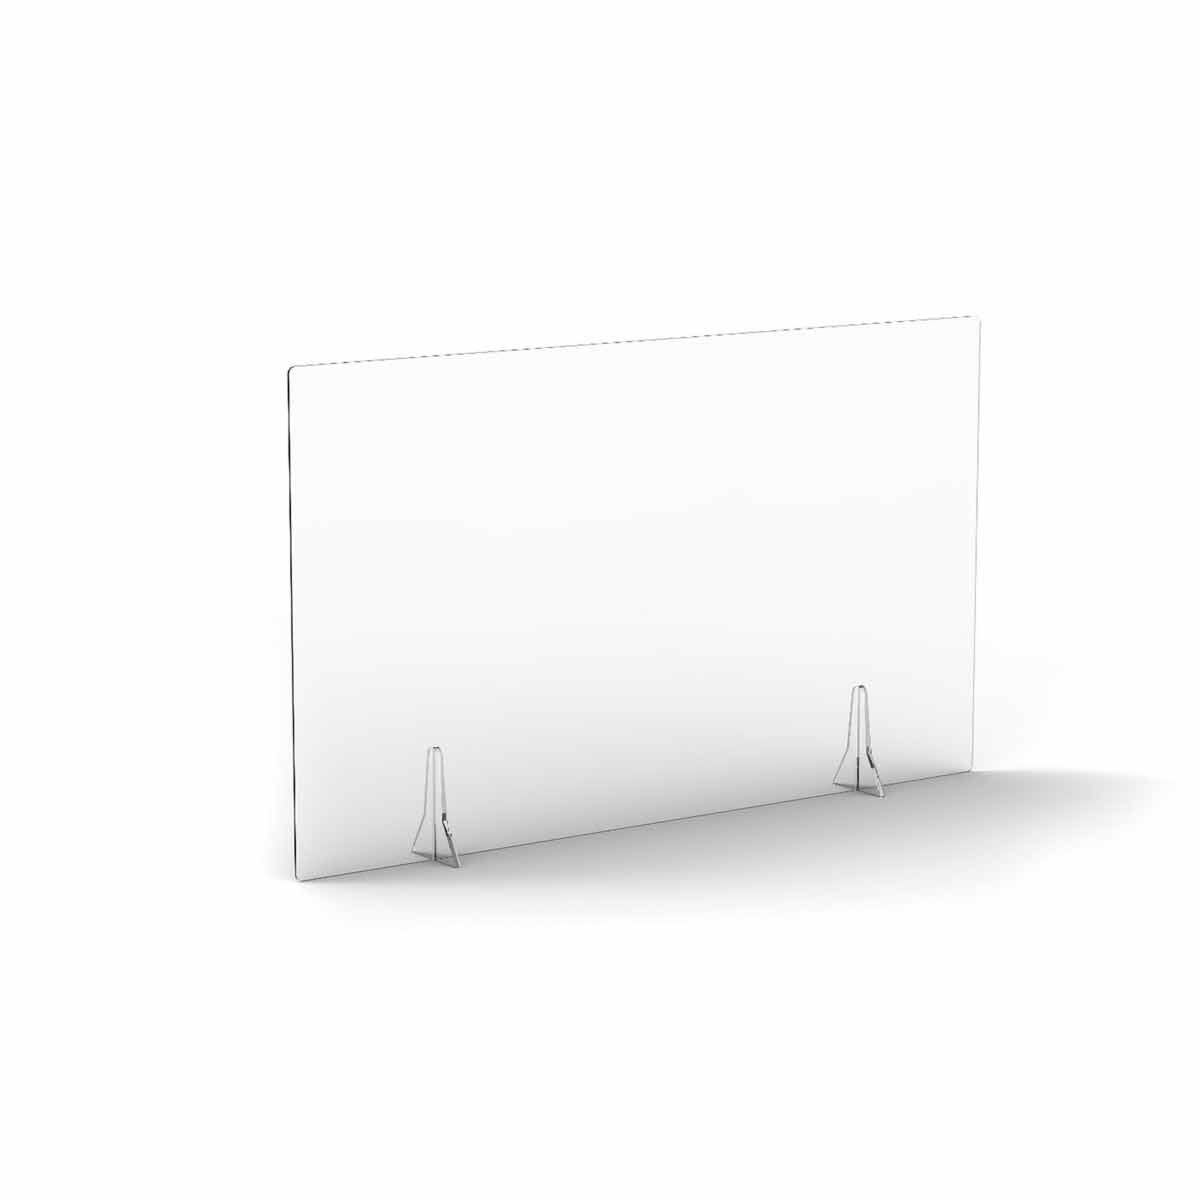 TC Office Clear Free Standing Acrylic Screen 1200mm X 700mm